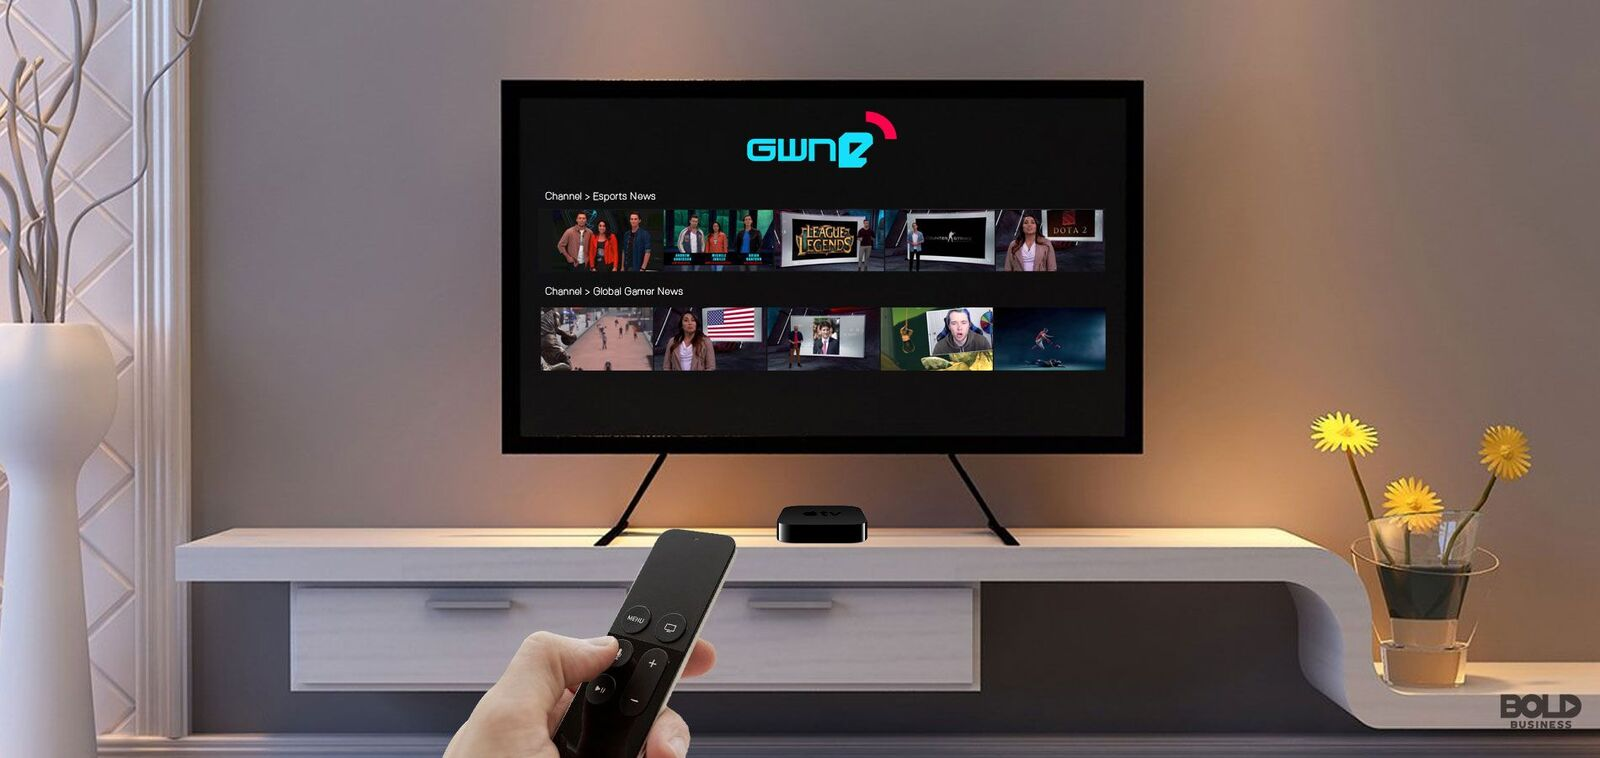 Image of apple remote pointed at tv featuring GWNe home screen